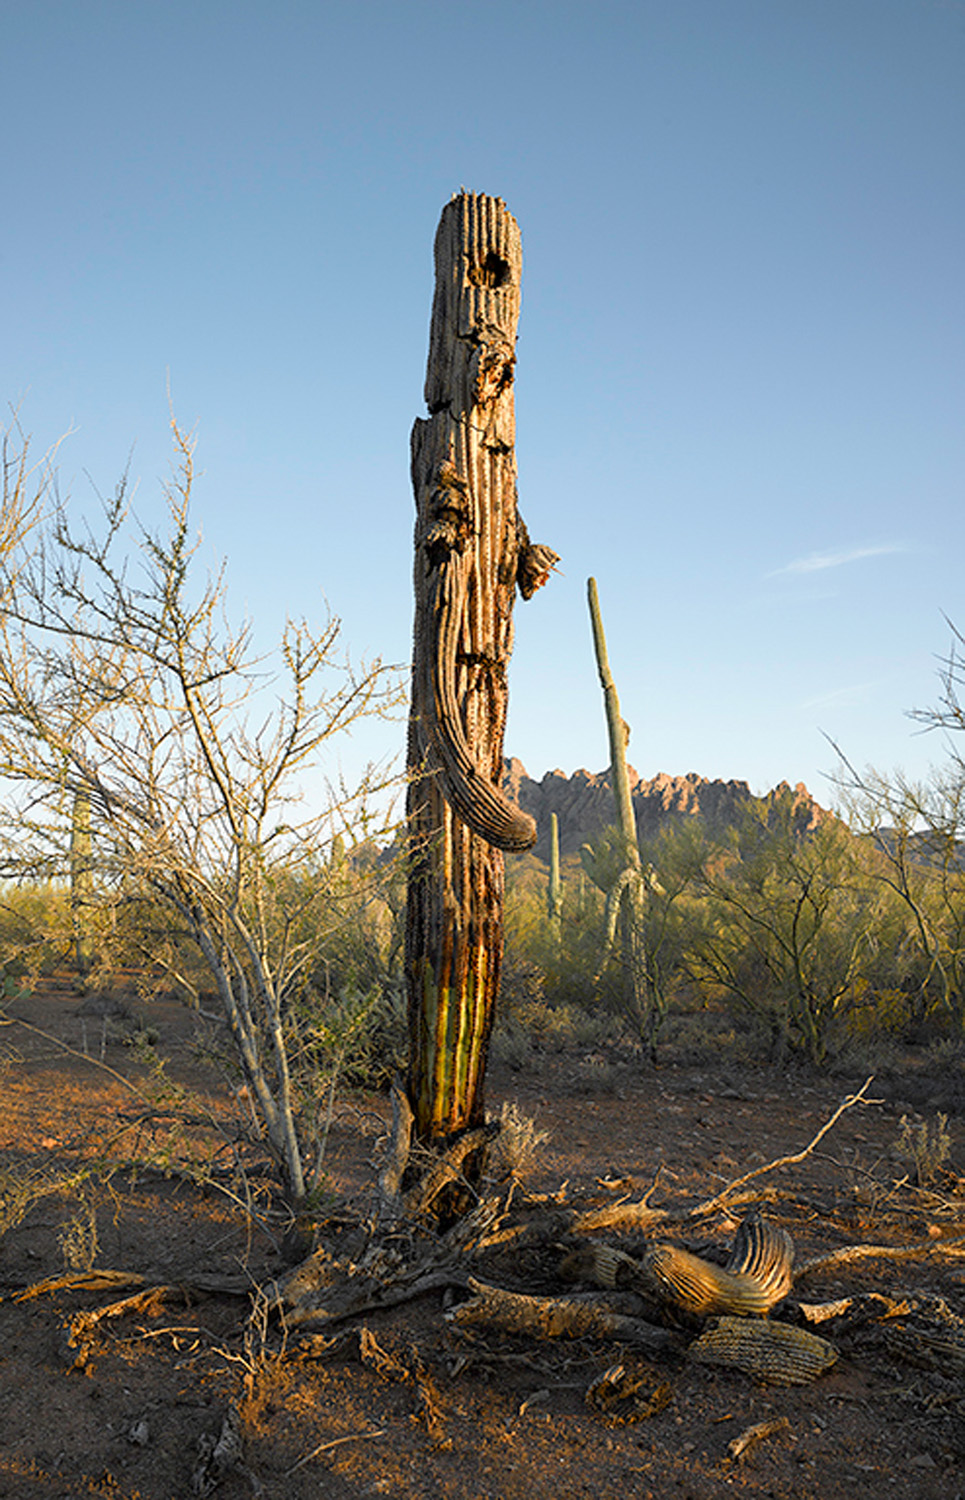 Saguaro desiccated and falling apart, 2013